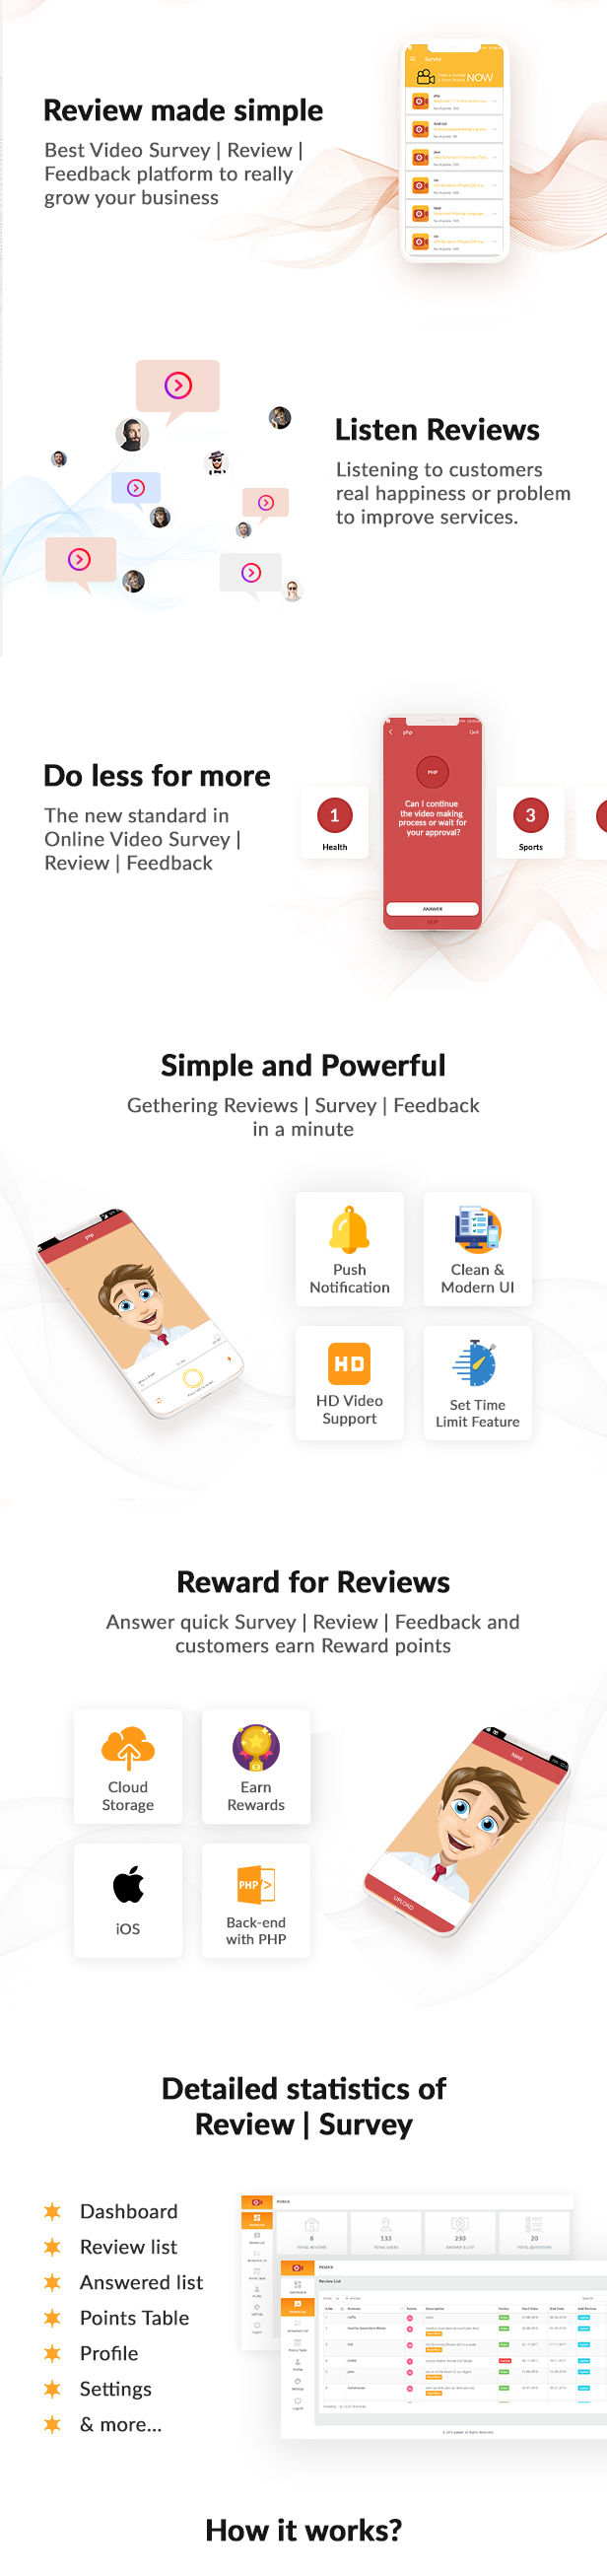 Product Review | Survey | Feedback through Video (iOS) - 1